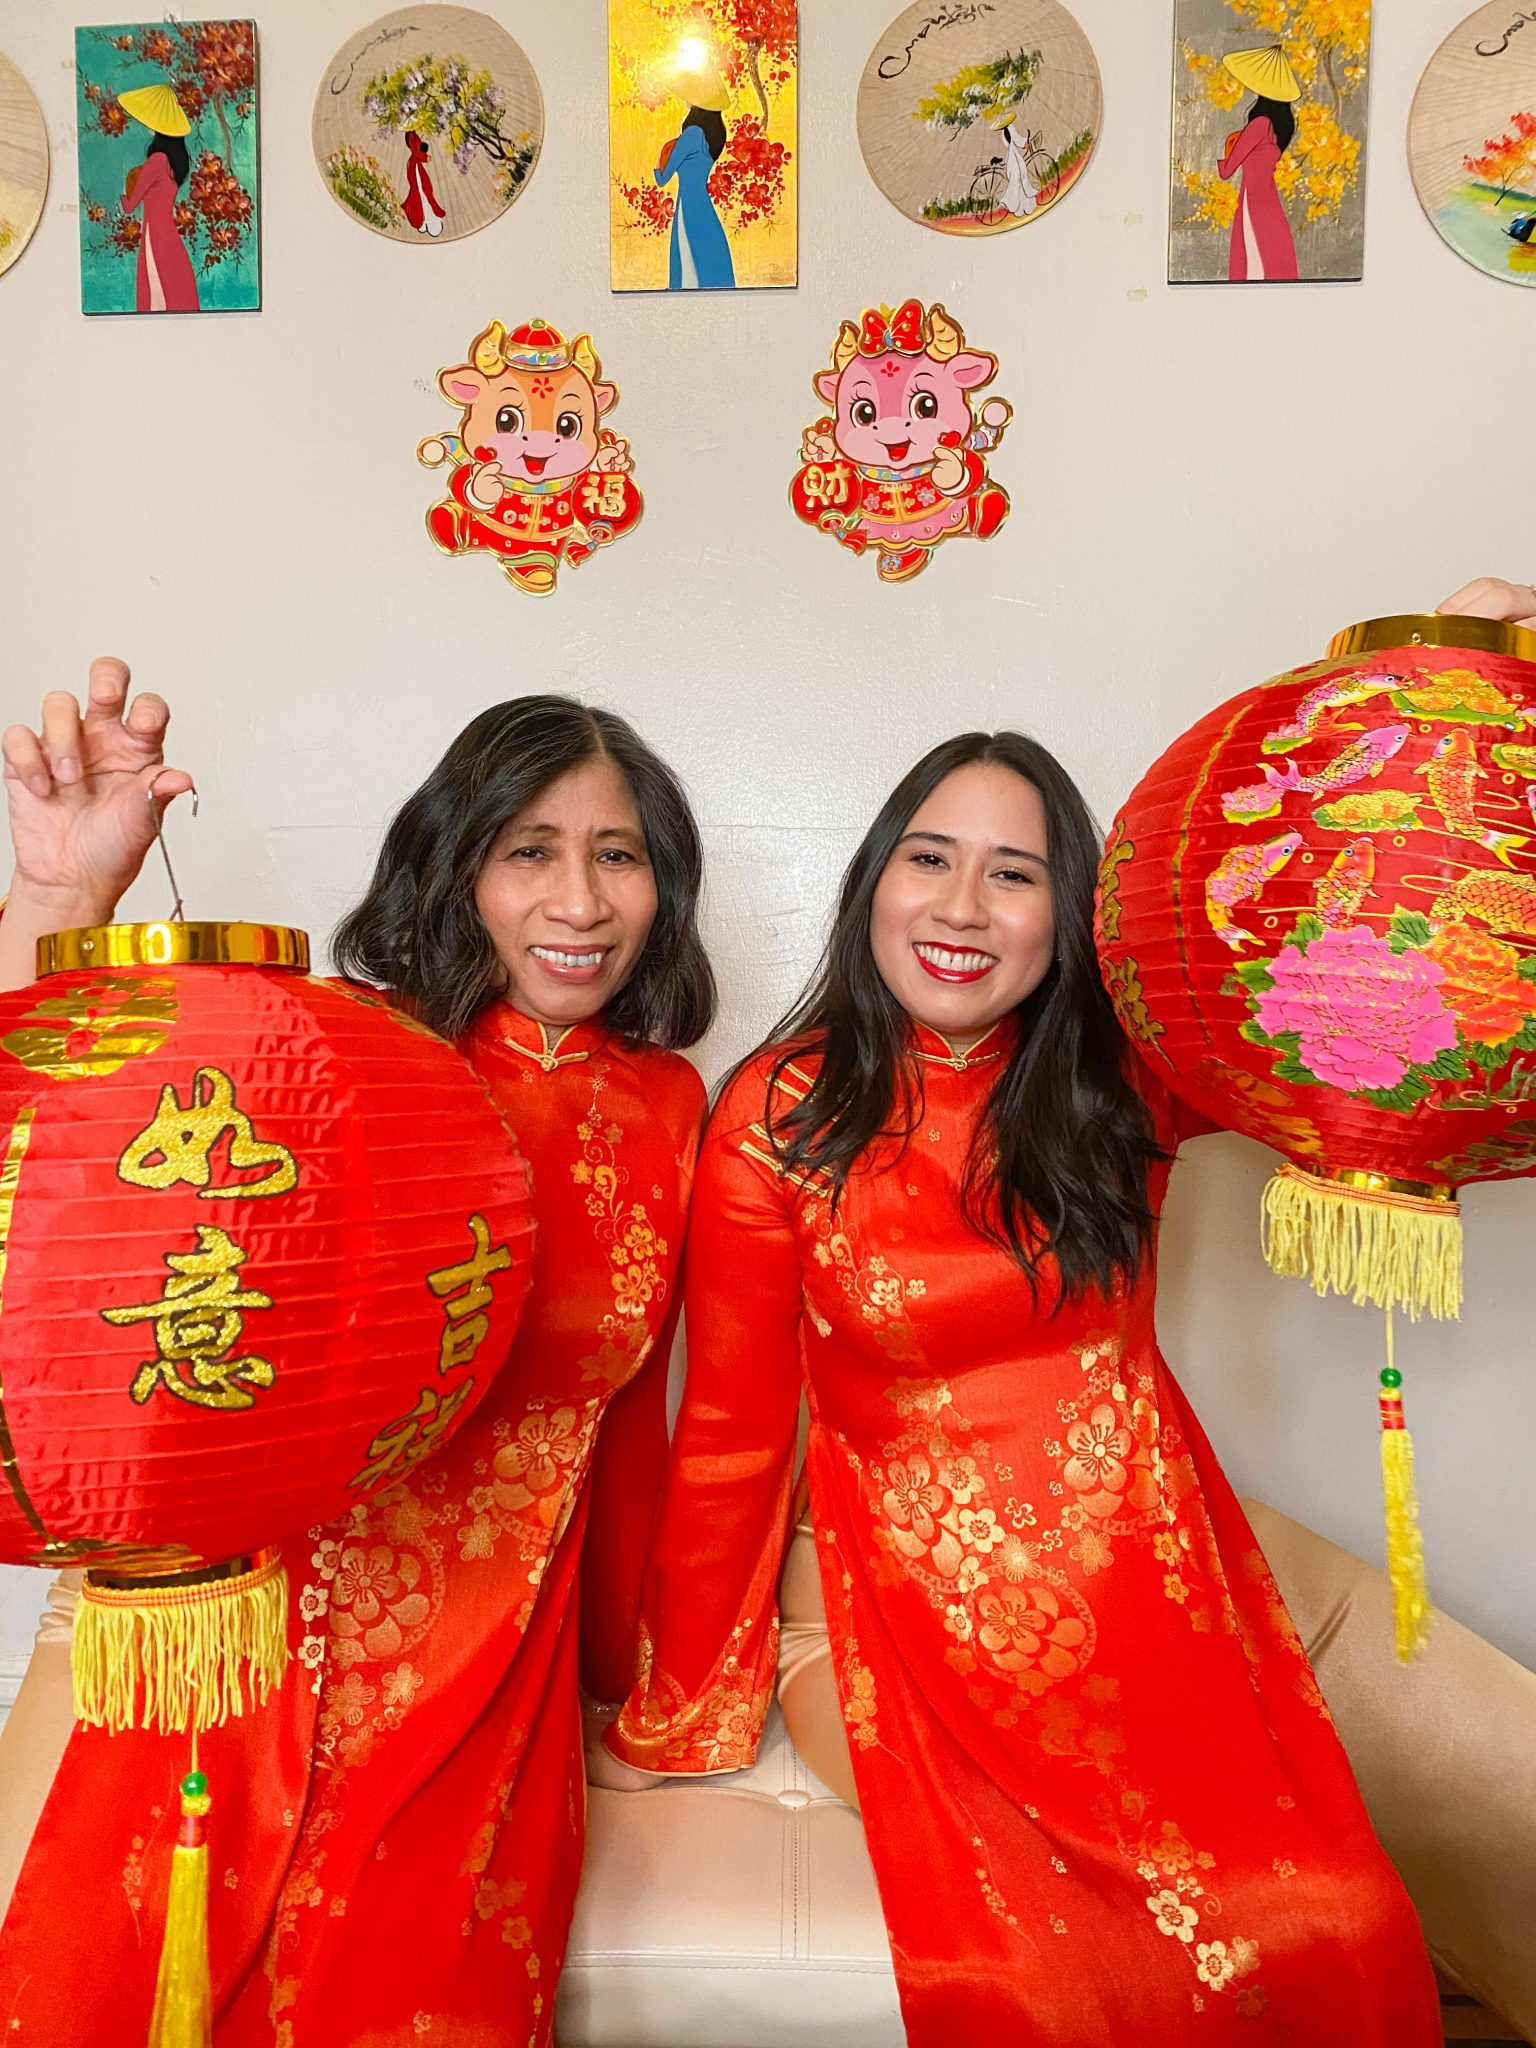 Happy Lunar New Year - Year of the Ox by Basically A Mess (photo of two women in traditional Vietnamese ao dai and red lanterns)